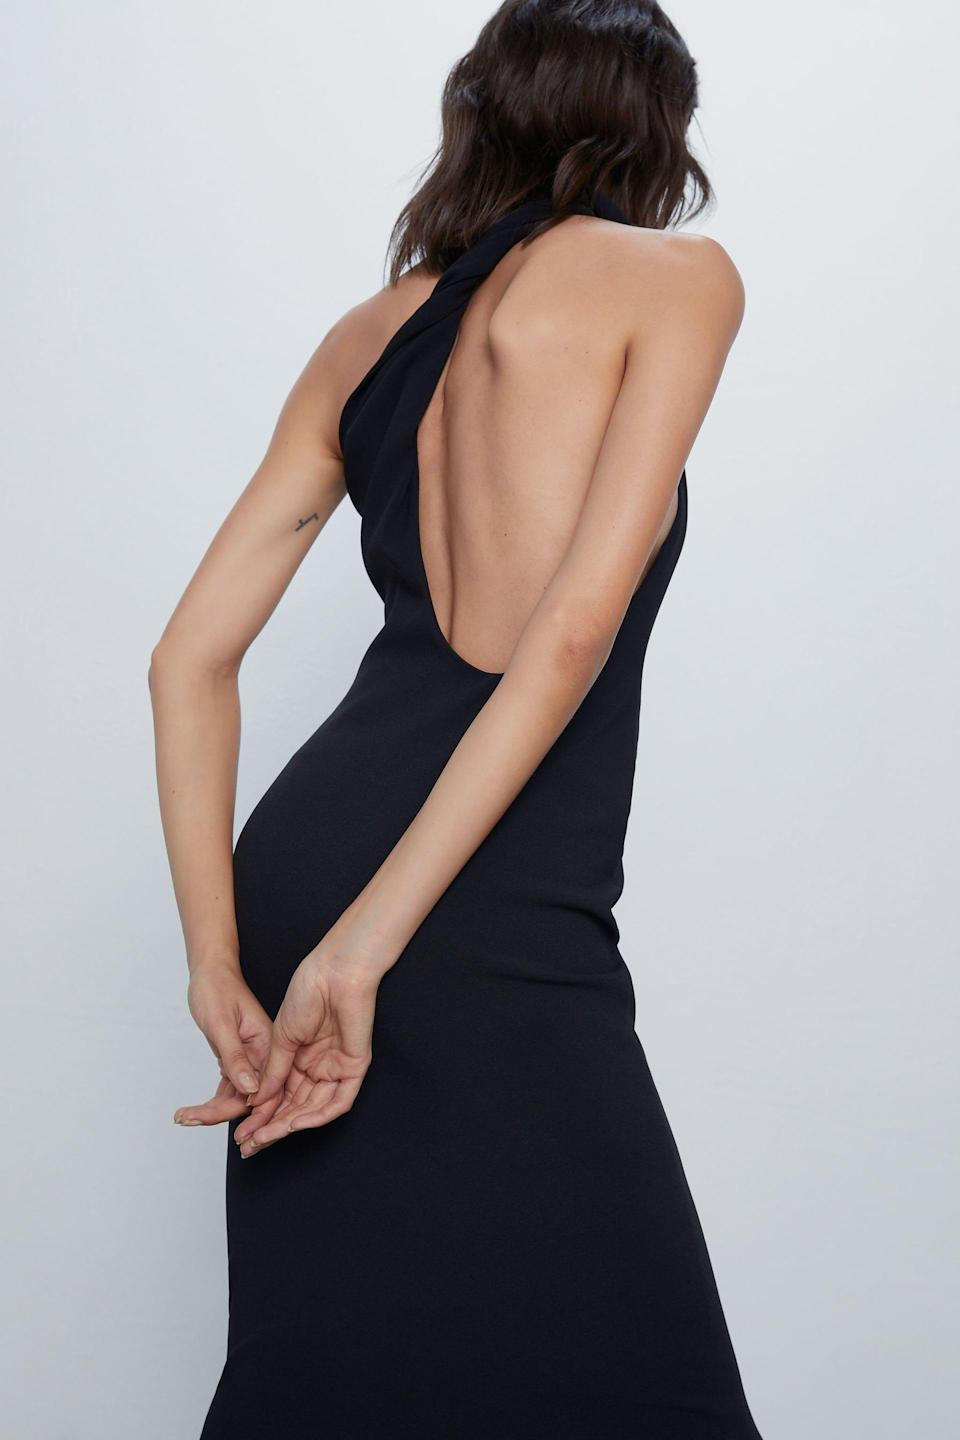 """<p><strong>ZARA</strong></p><p>zara.com</p><p><strong>$69.90</strong></p><p><a href=""""https://www.zara.com/us/en/asymmetrical-slip-dress-p02393307.html"""" rel=""""nofollow noopener"""" target=""""_blank"""" data-ylk=""""slk:SHOP IT"""" class=""""link rapid-noclick-resp"""">SHOP IT</a></p><p>This open-back, asymmetrical dress has me drooling. It's a sleek and sexy way to update your LBD collection and add some edge without trying too hard. </p>"""